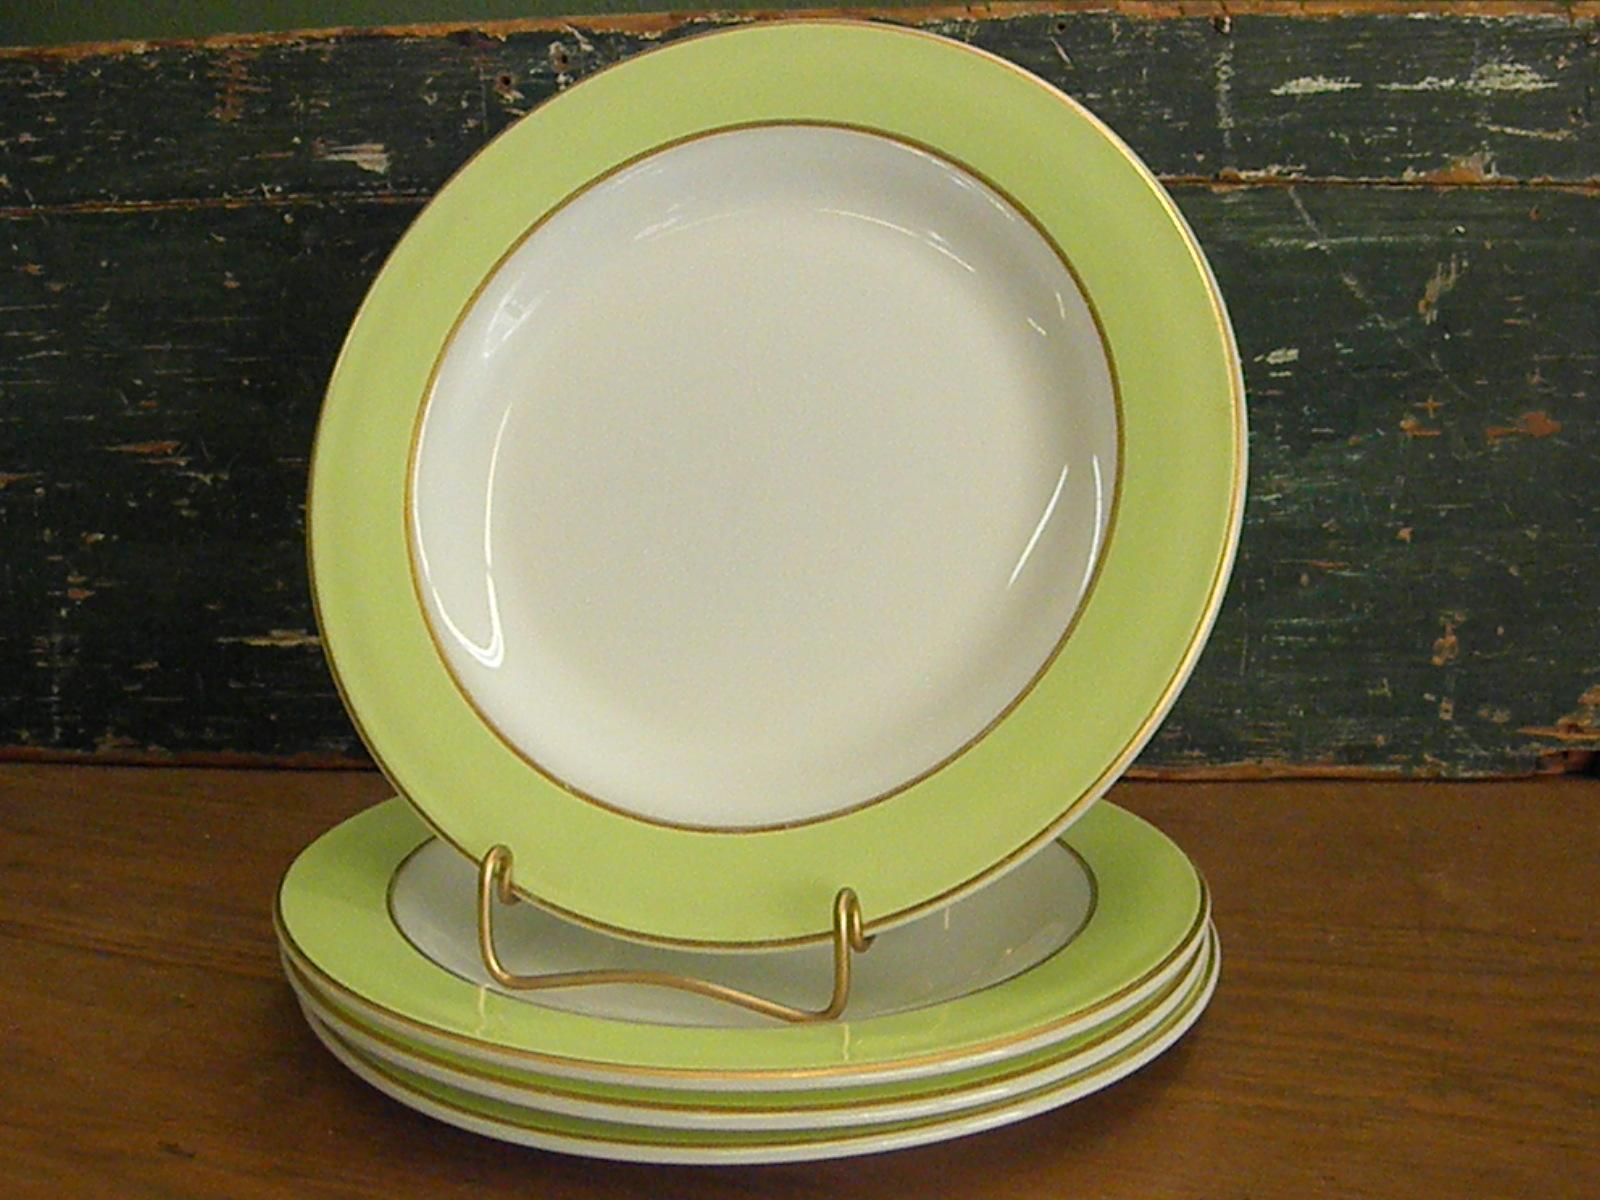 Pyrex Lime Green and White with Gold Trim Dinner Plate & Set of Pyrex Lime Green and White with Gold Trim Dinner Plates ...